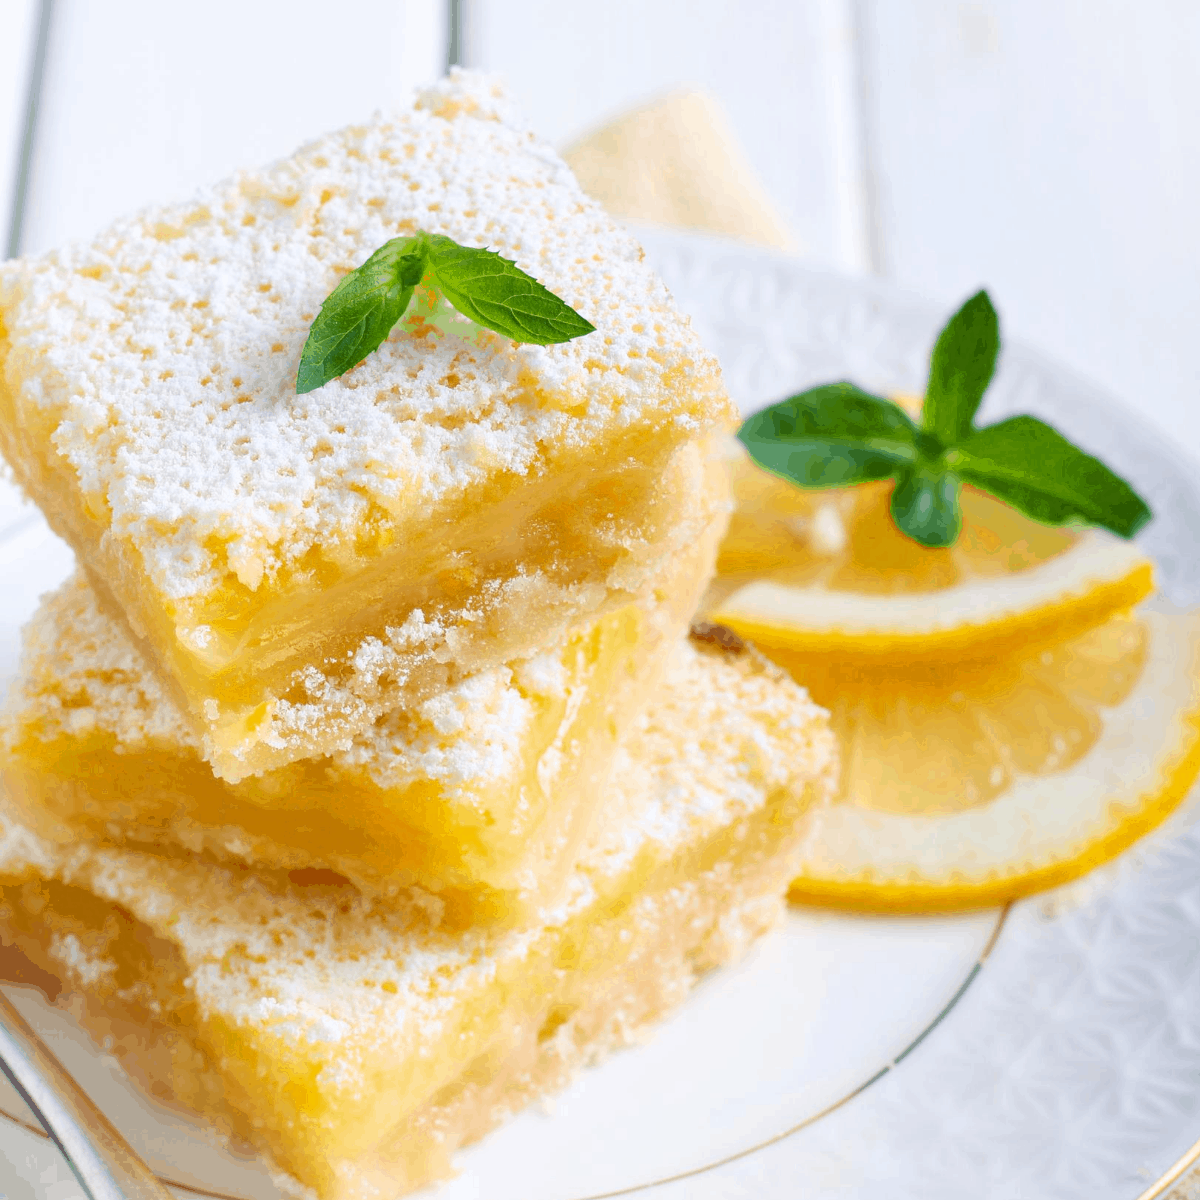 Sugar free lemon squares FI